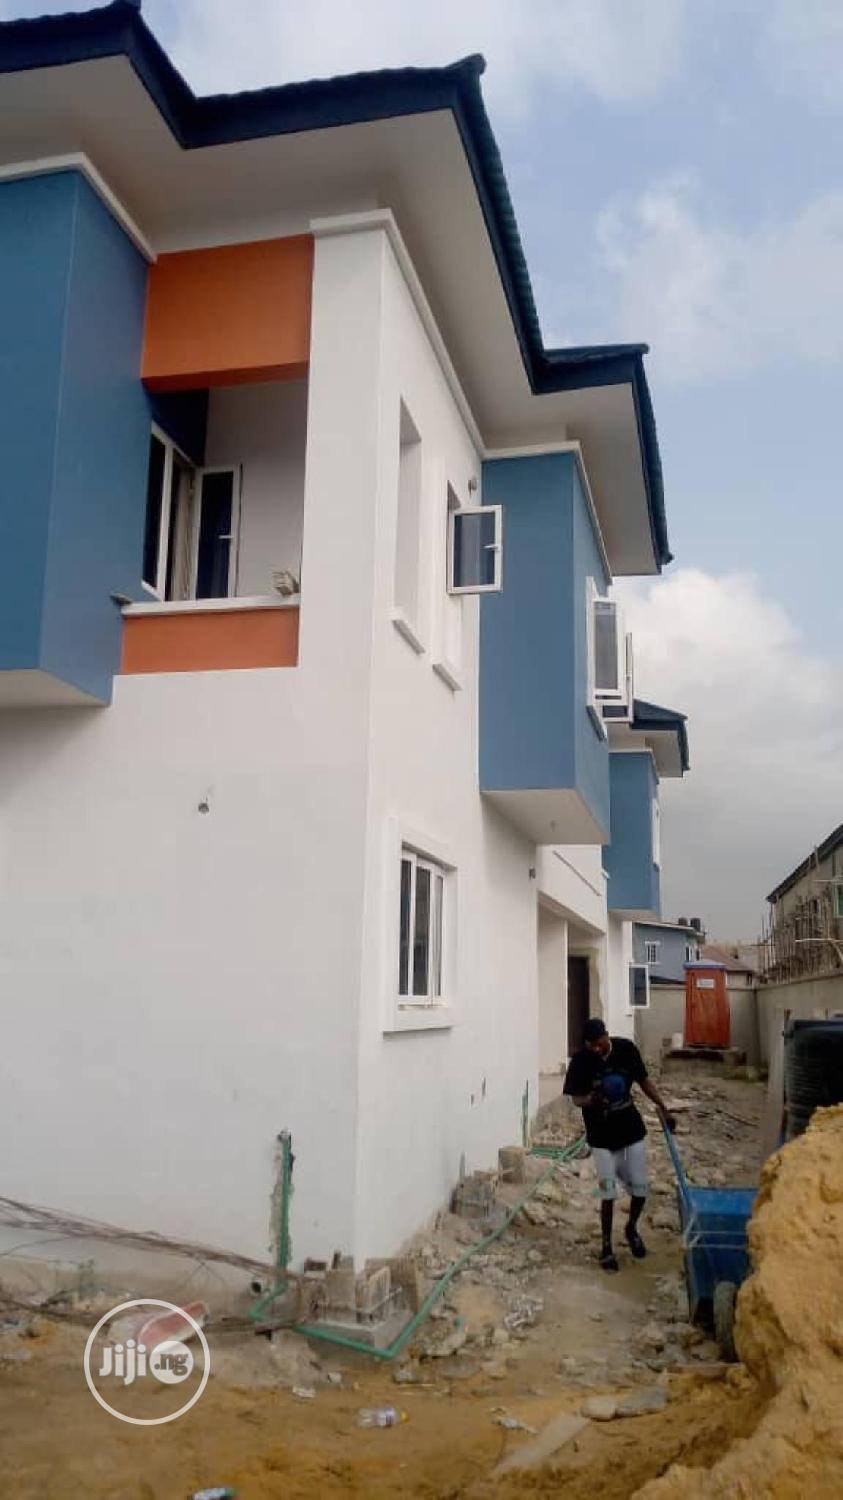 3 Bedroom Duplex At Sangotedo, Ajah Lekki | Houses & Apartments For Rent for sale in Ajah, Lagos State, Nigeria